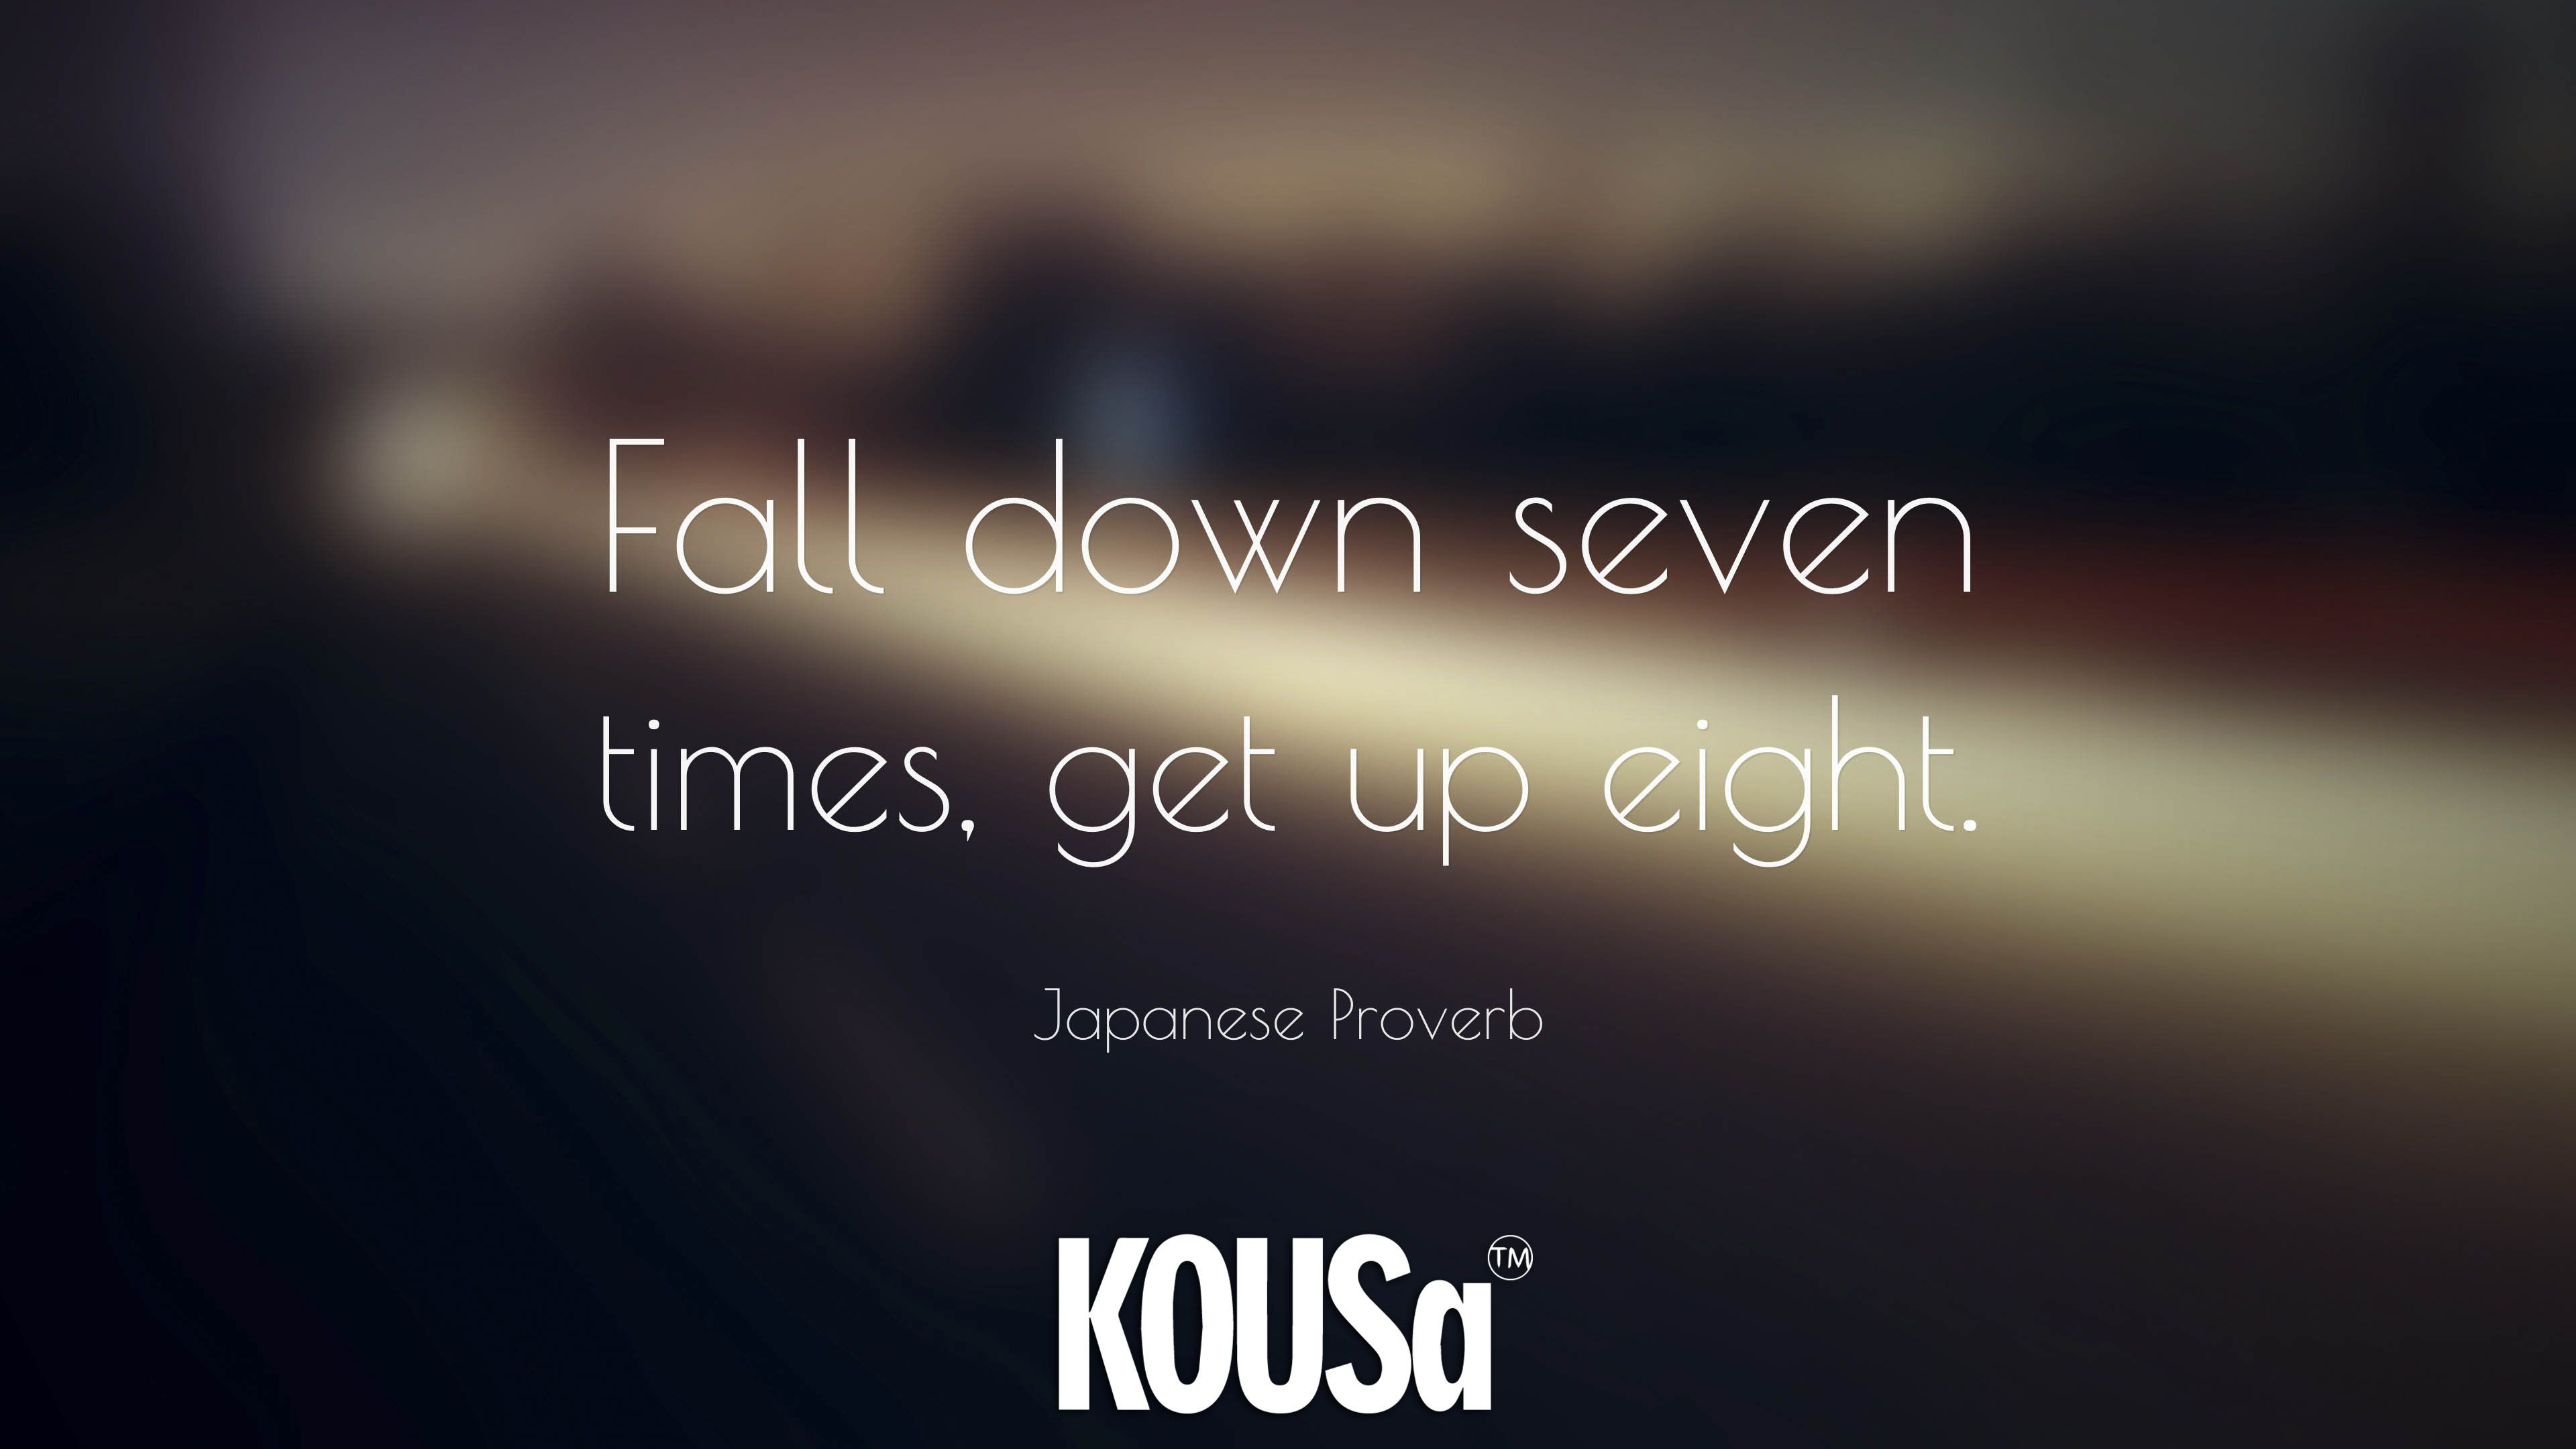 This Inspirational Japanese Proverb Resonates With Us Always Get